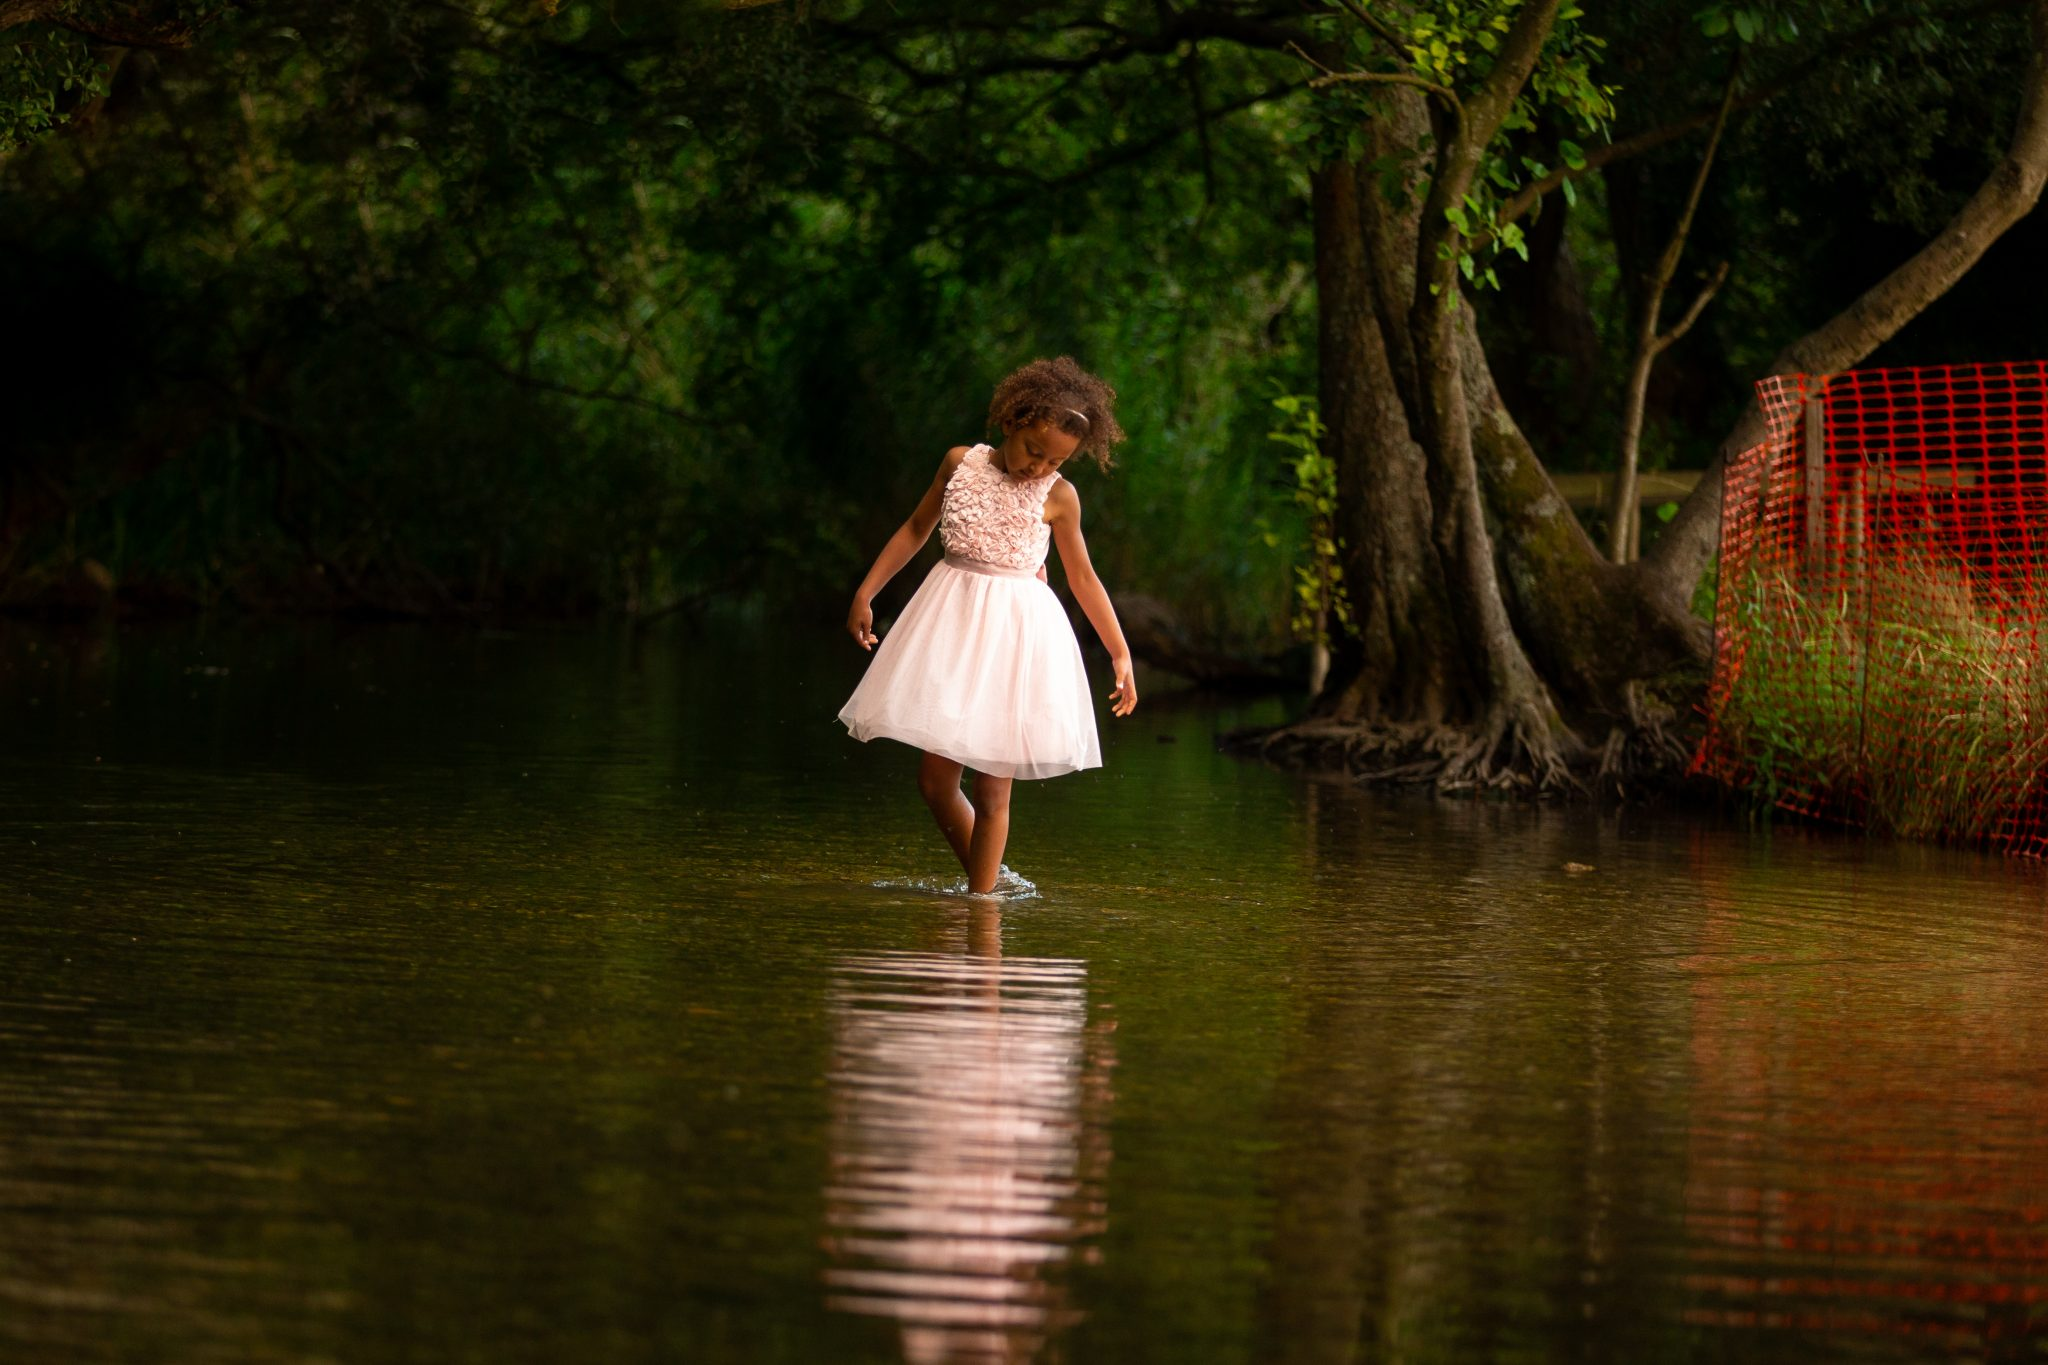 family photographer in chandlers ford - young girl doing ballet in the water